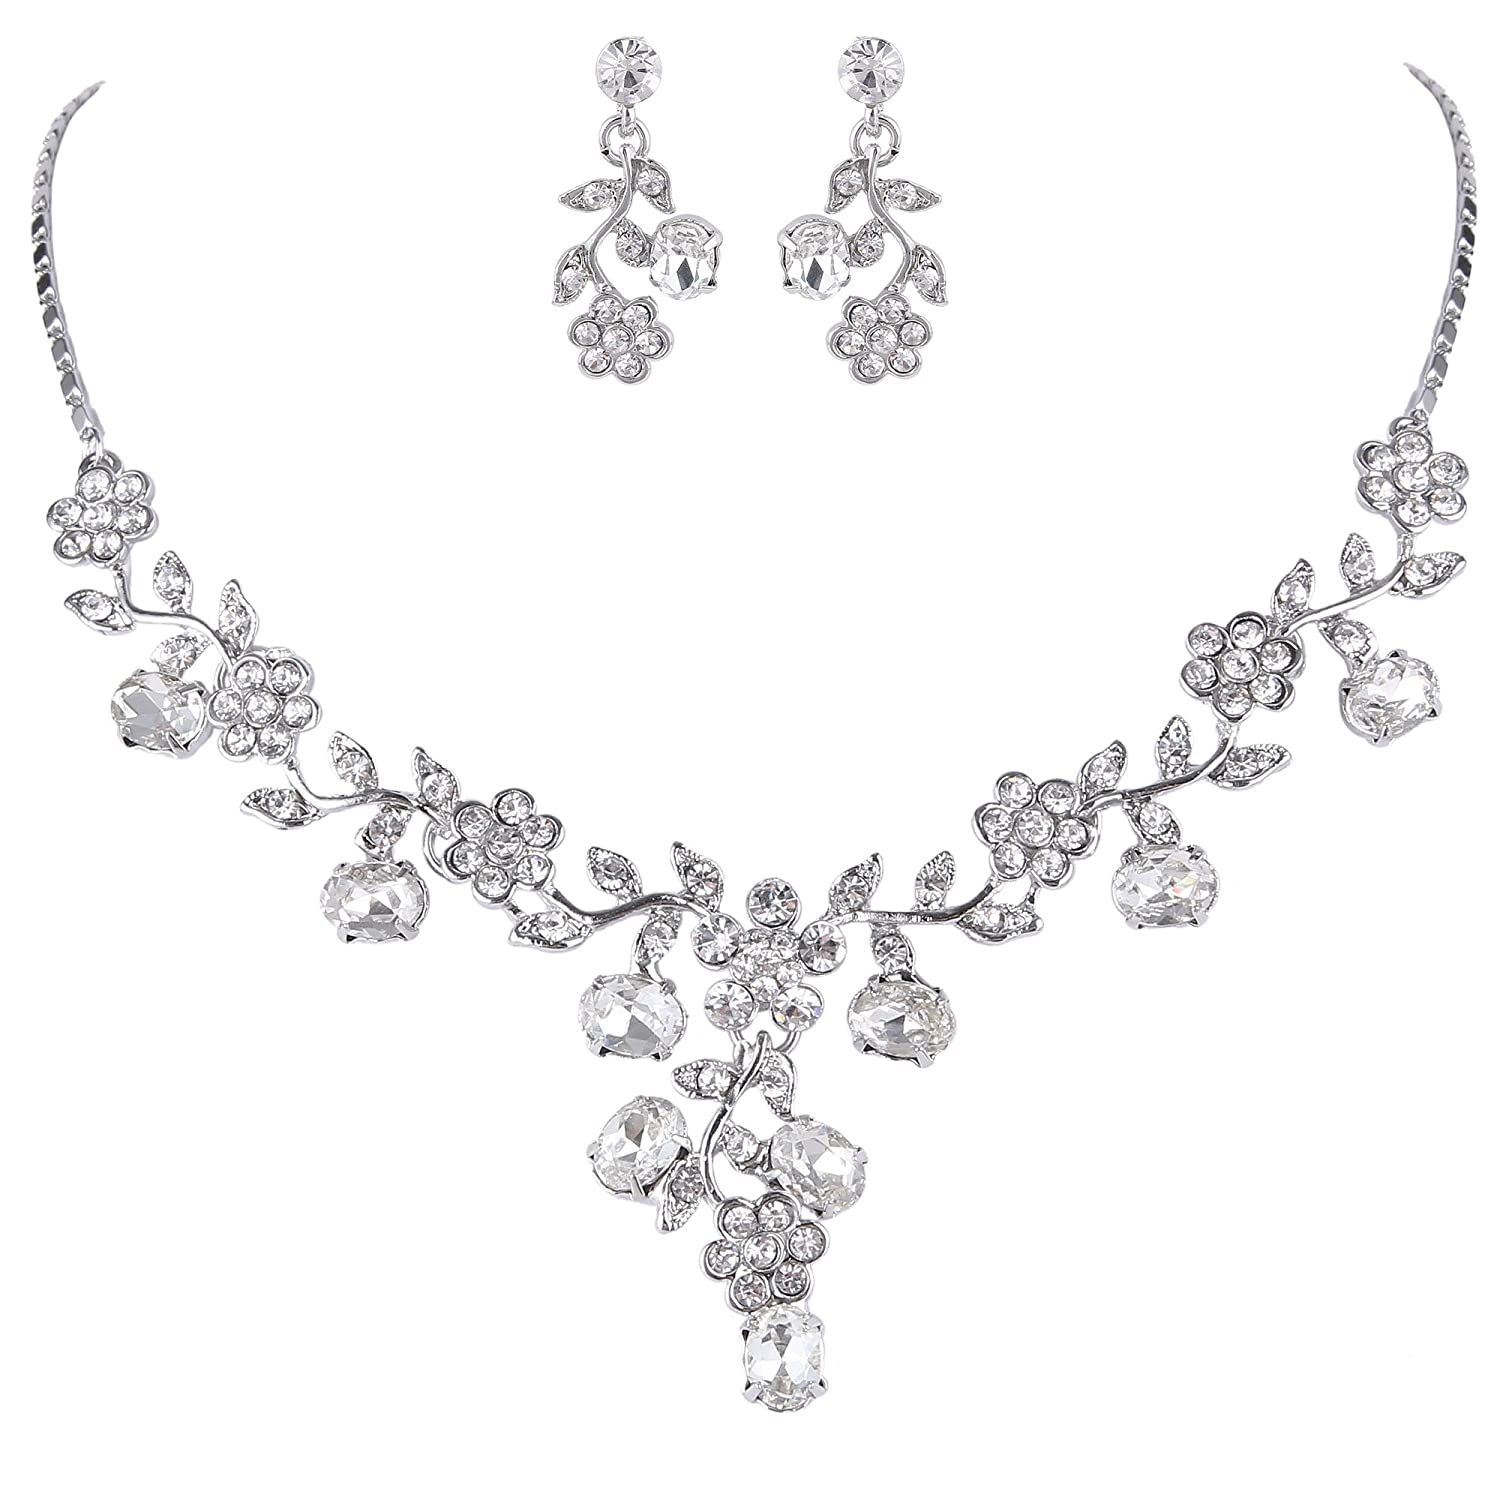 Ever Faith Wedding Leaf Vine Necklace Earrings Set Clear Austrian Crystal Silver-Tone N03848-1 N03848-7